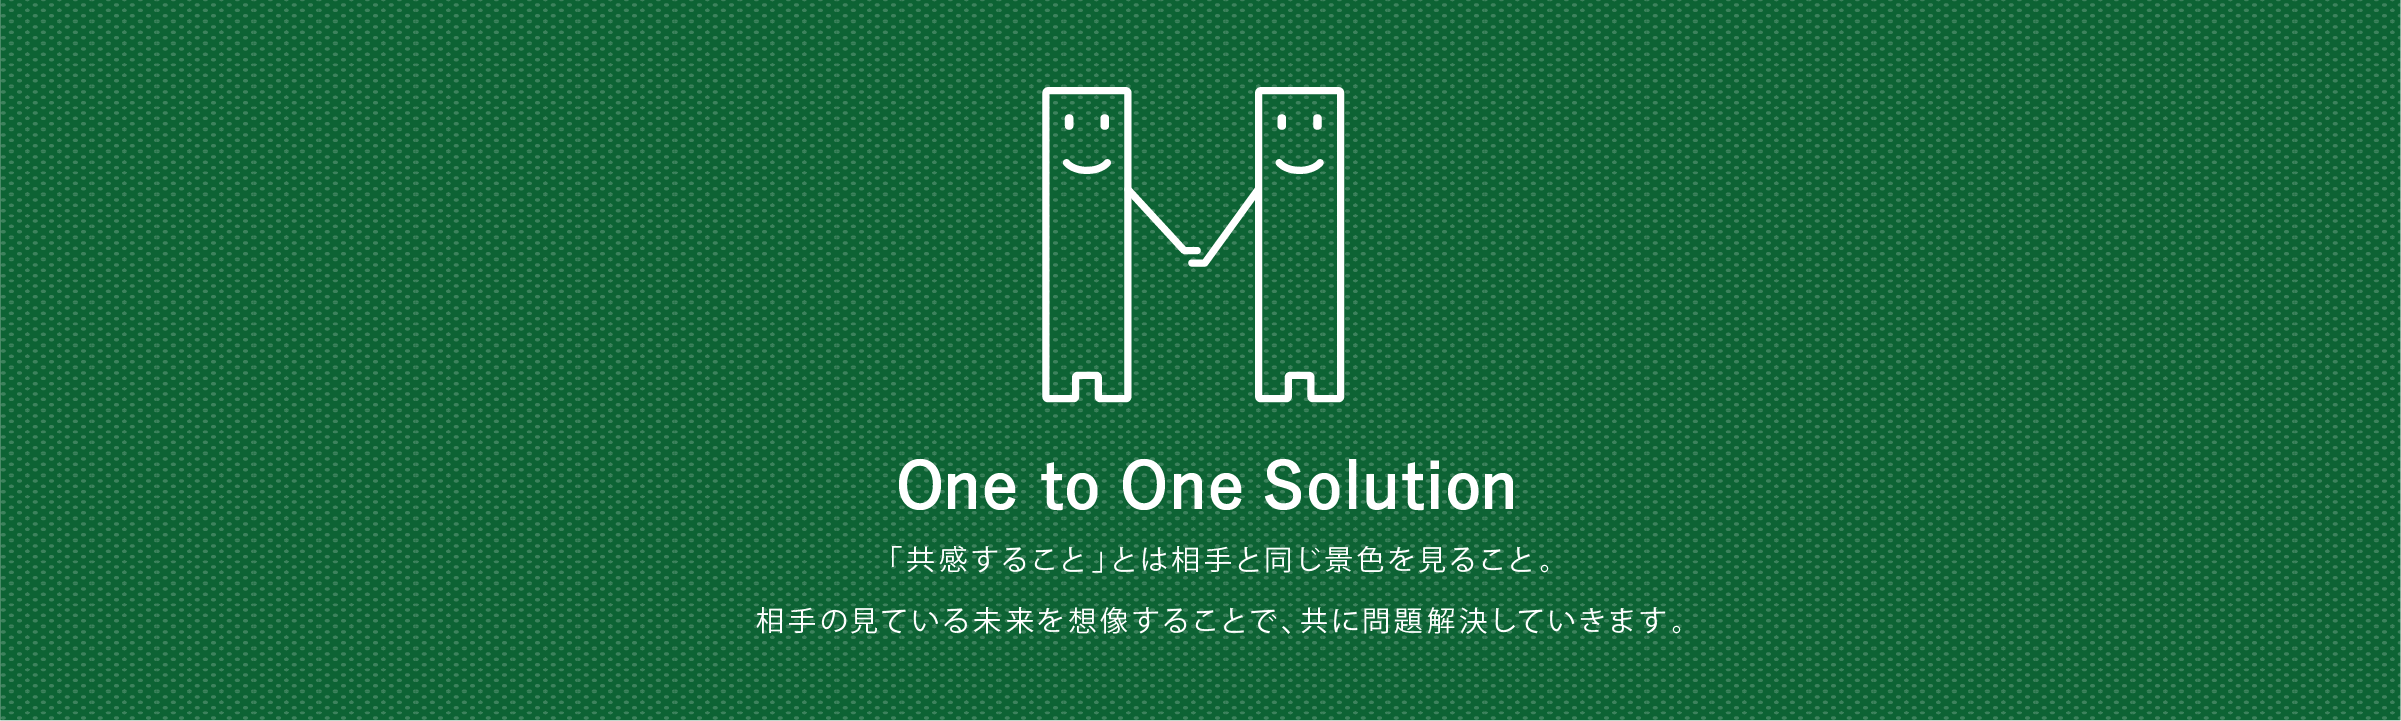 One to One Solution